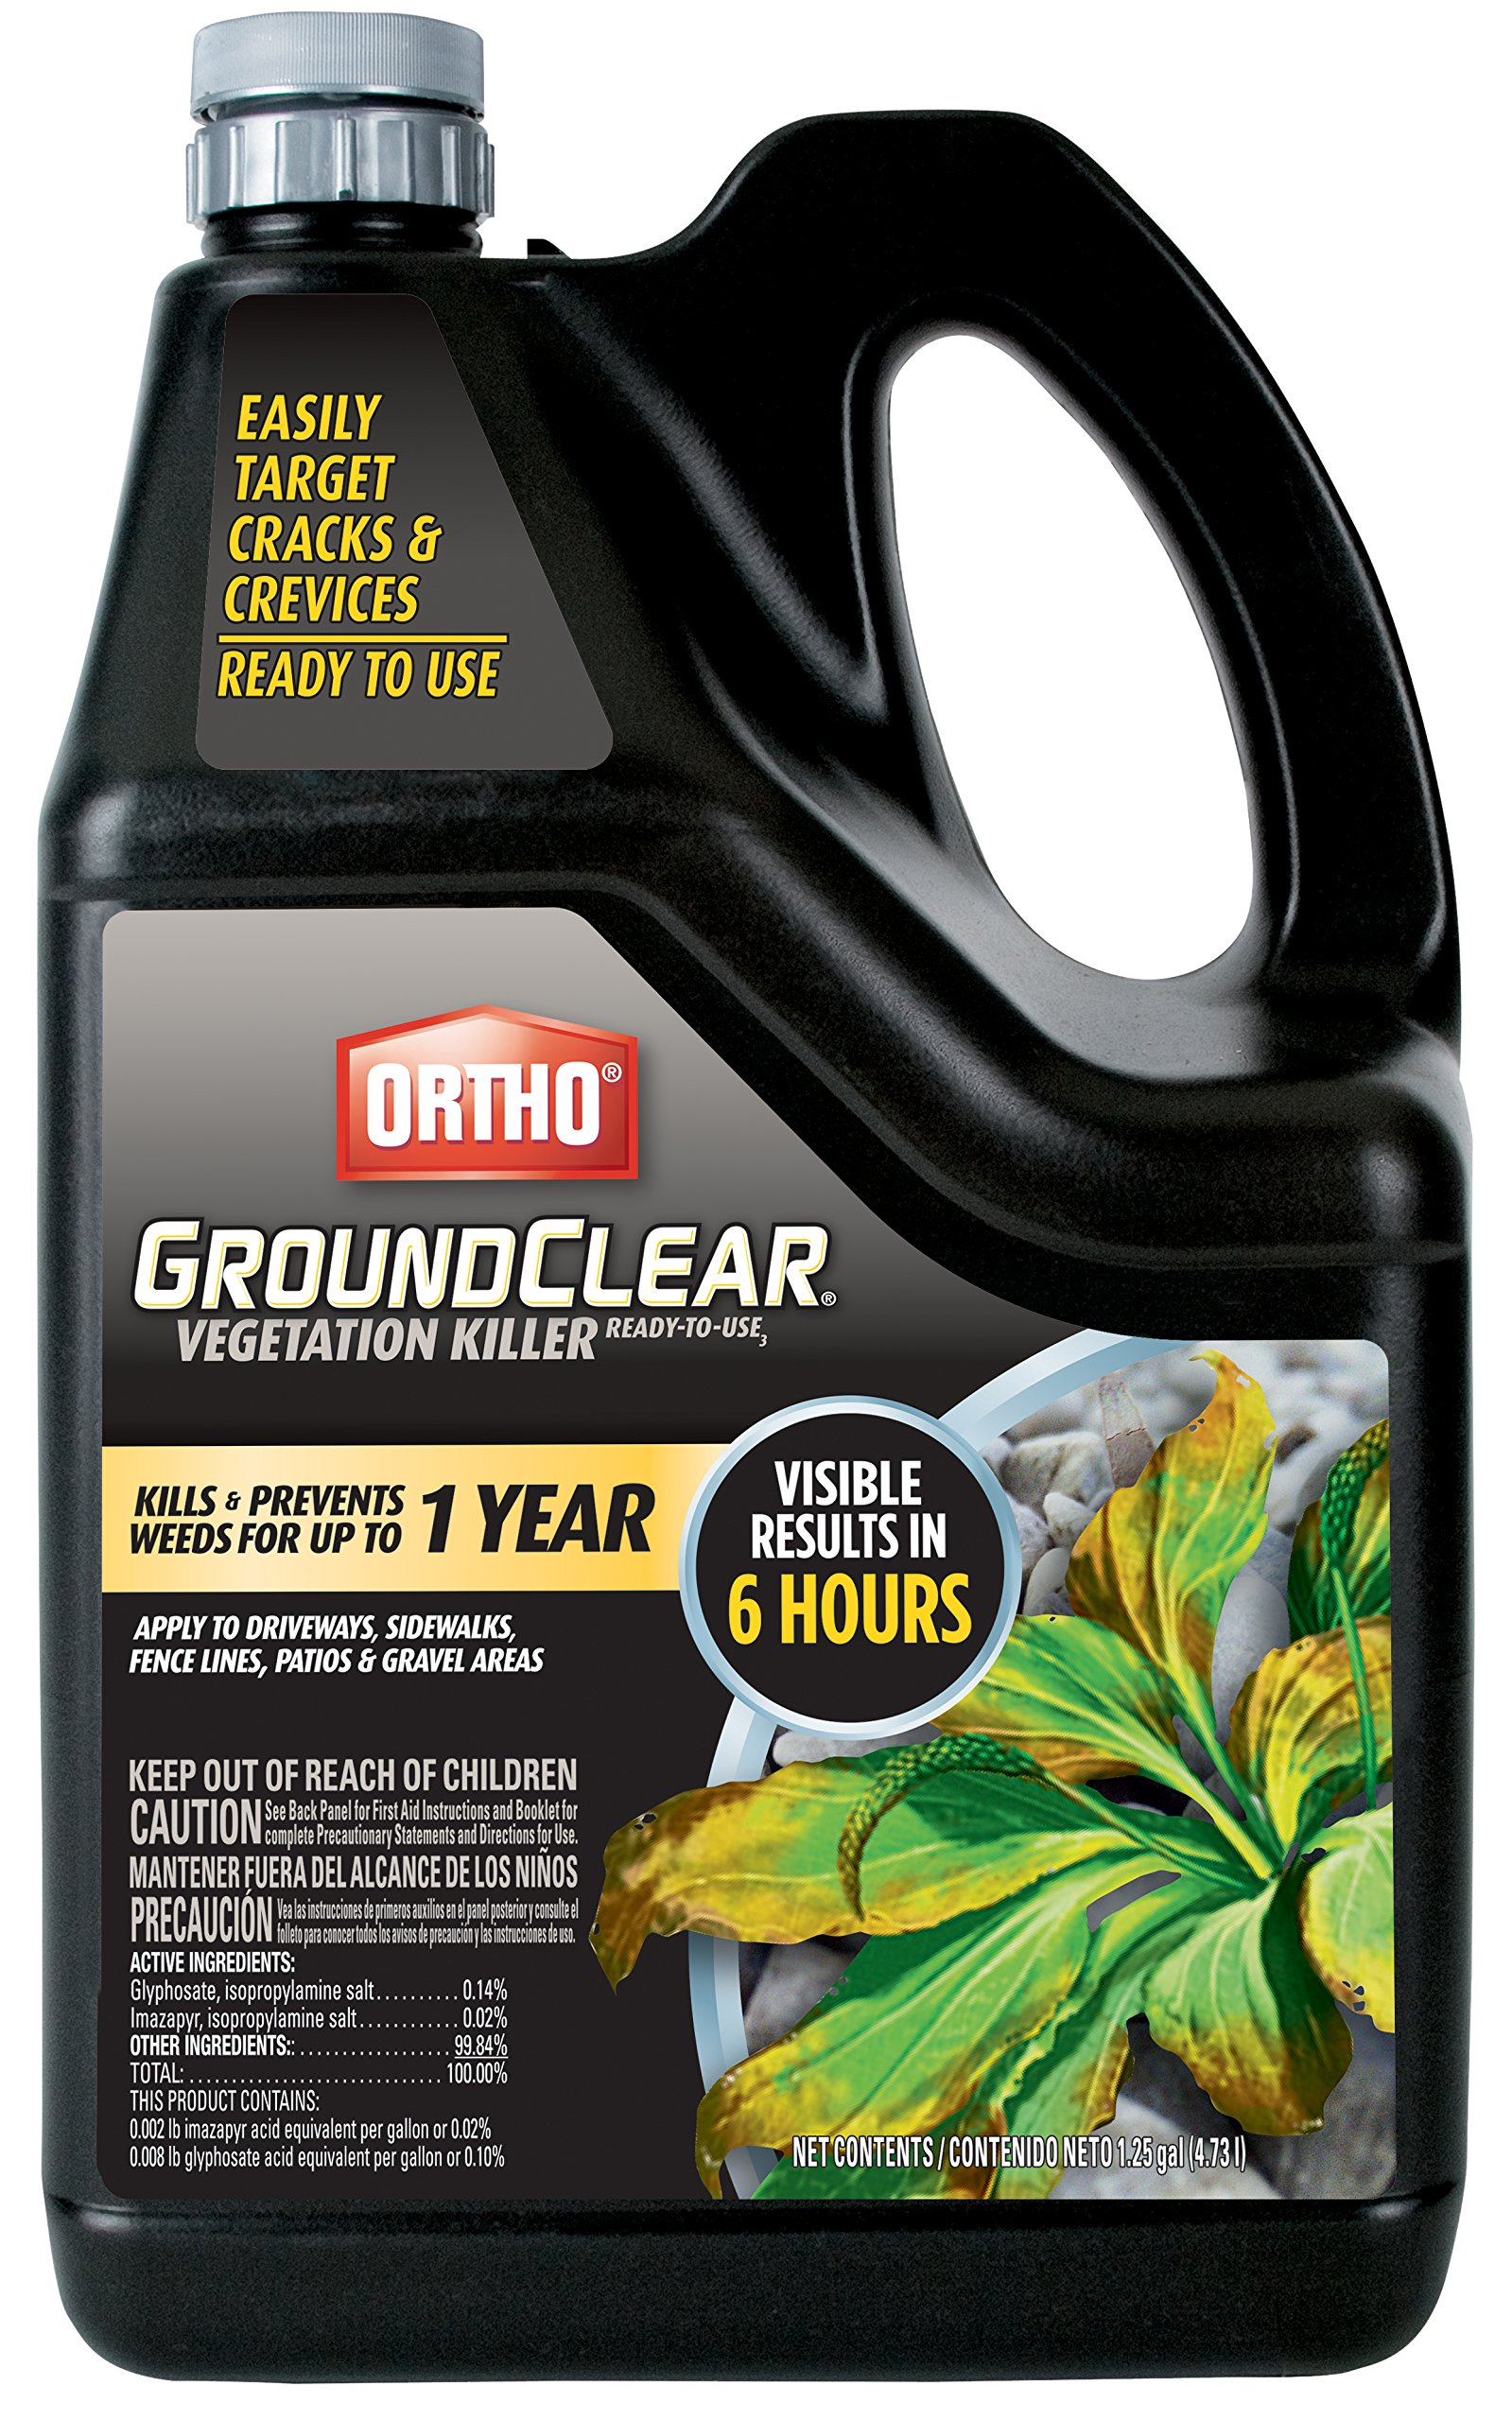 Ortho 0436604 Ground Clear Vegetation Killer Ready-to-Use Sprinkler Cap, 1.25 Gallon